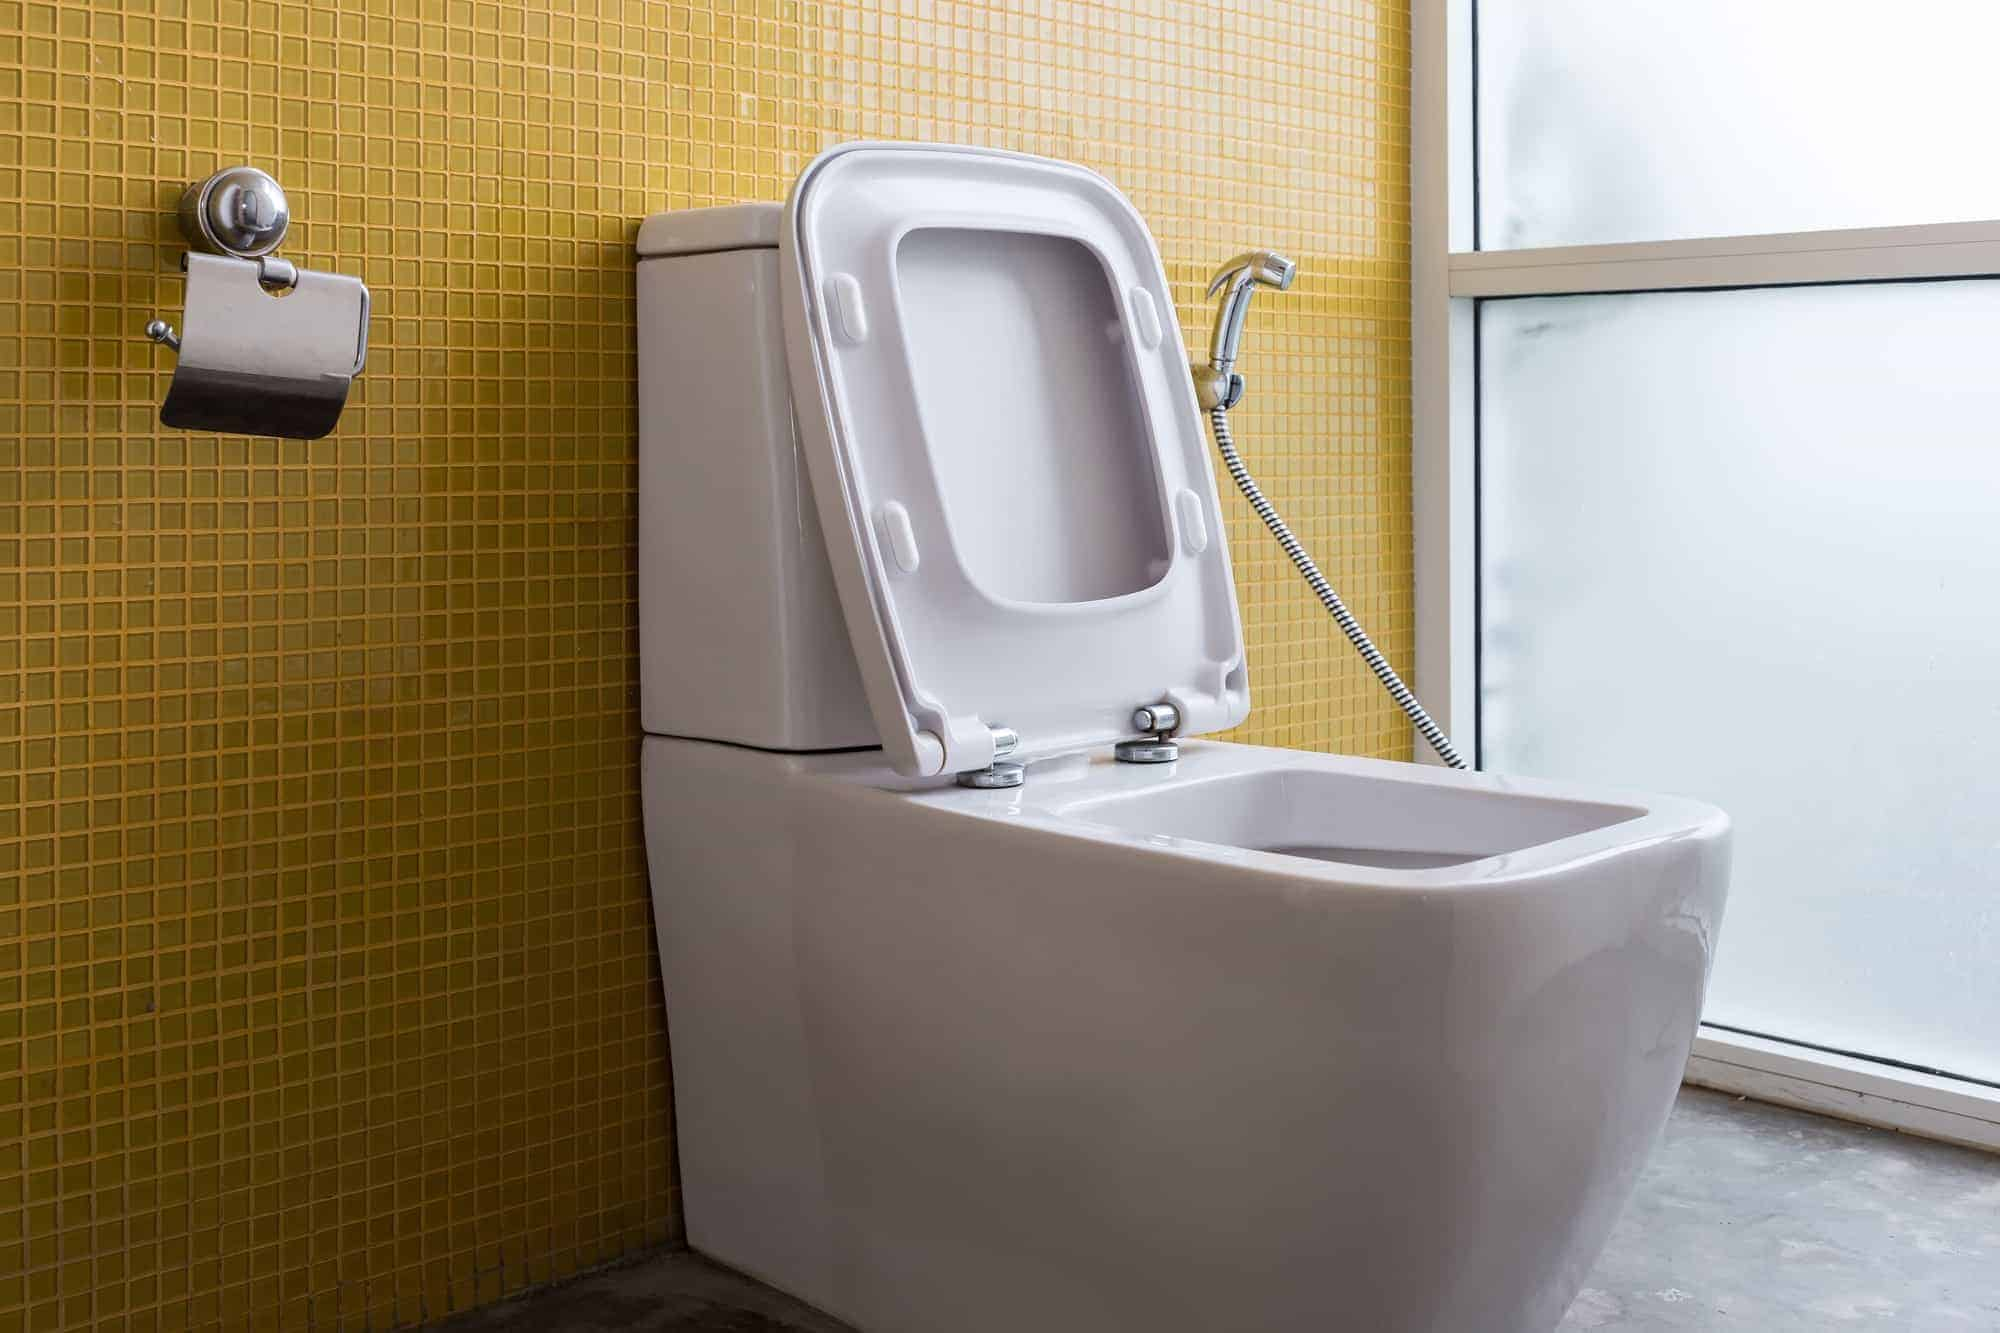 bidet in front of yellow tile